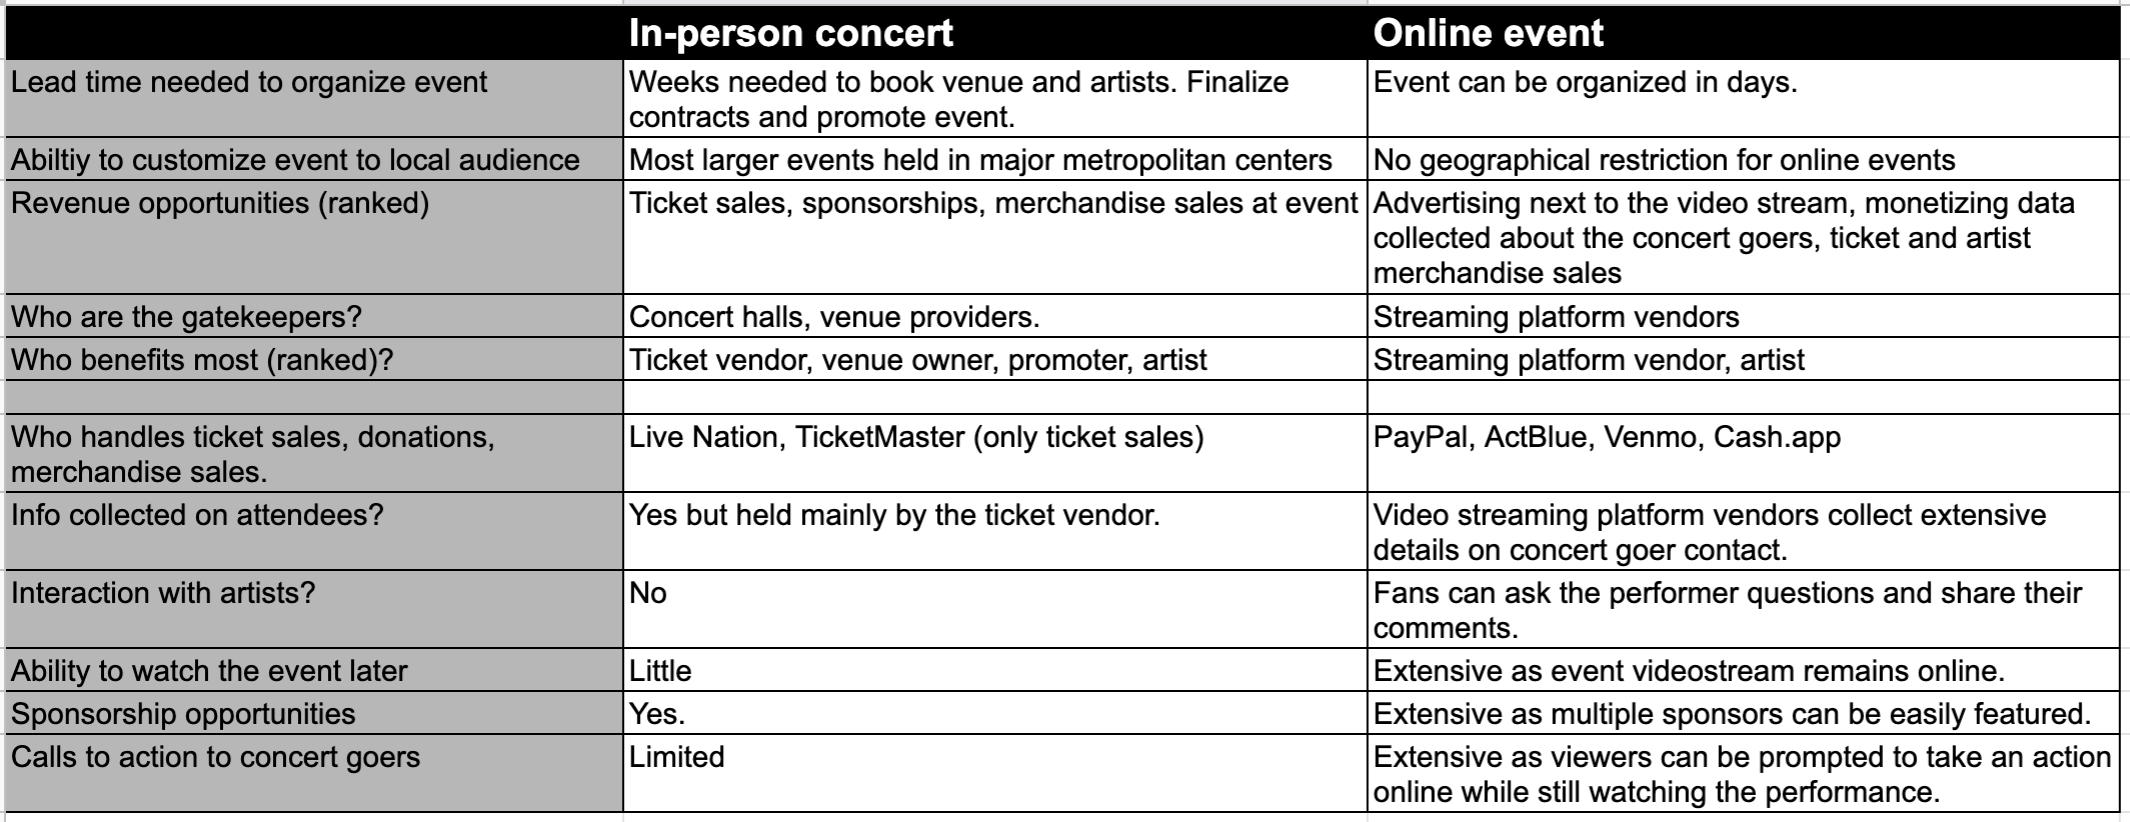 Online events offer political organizers more flexibility at lower costs than in-person concerts.